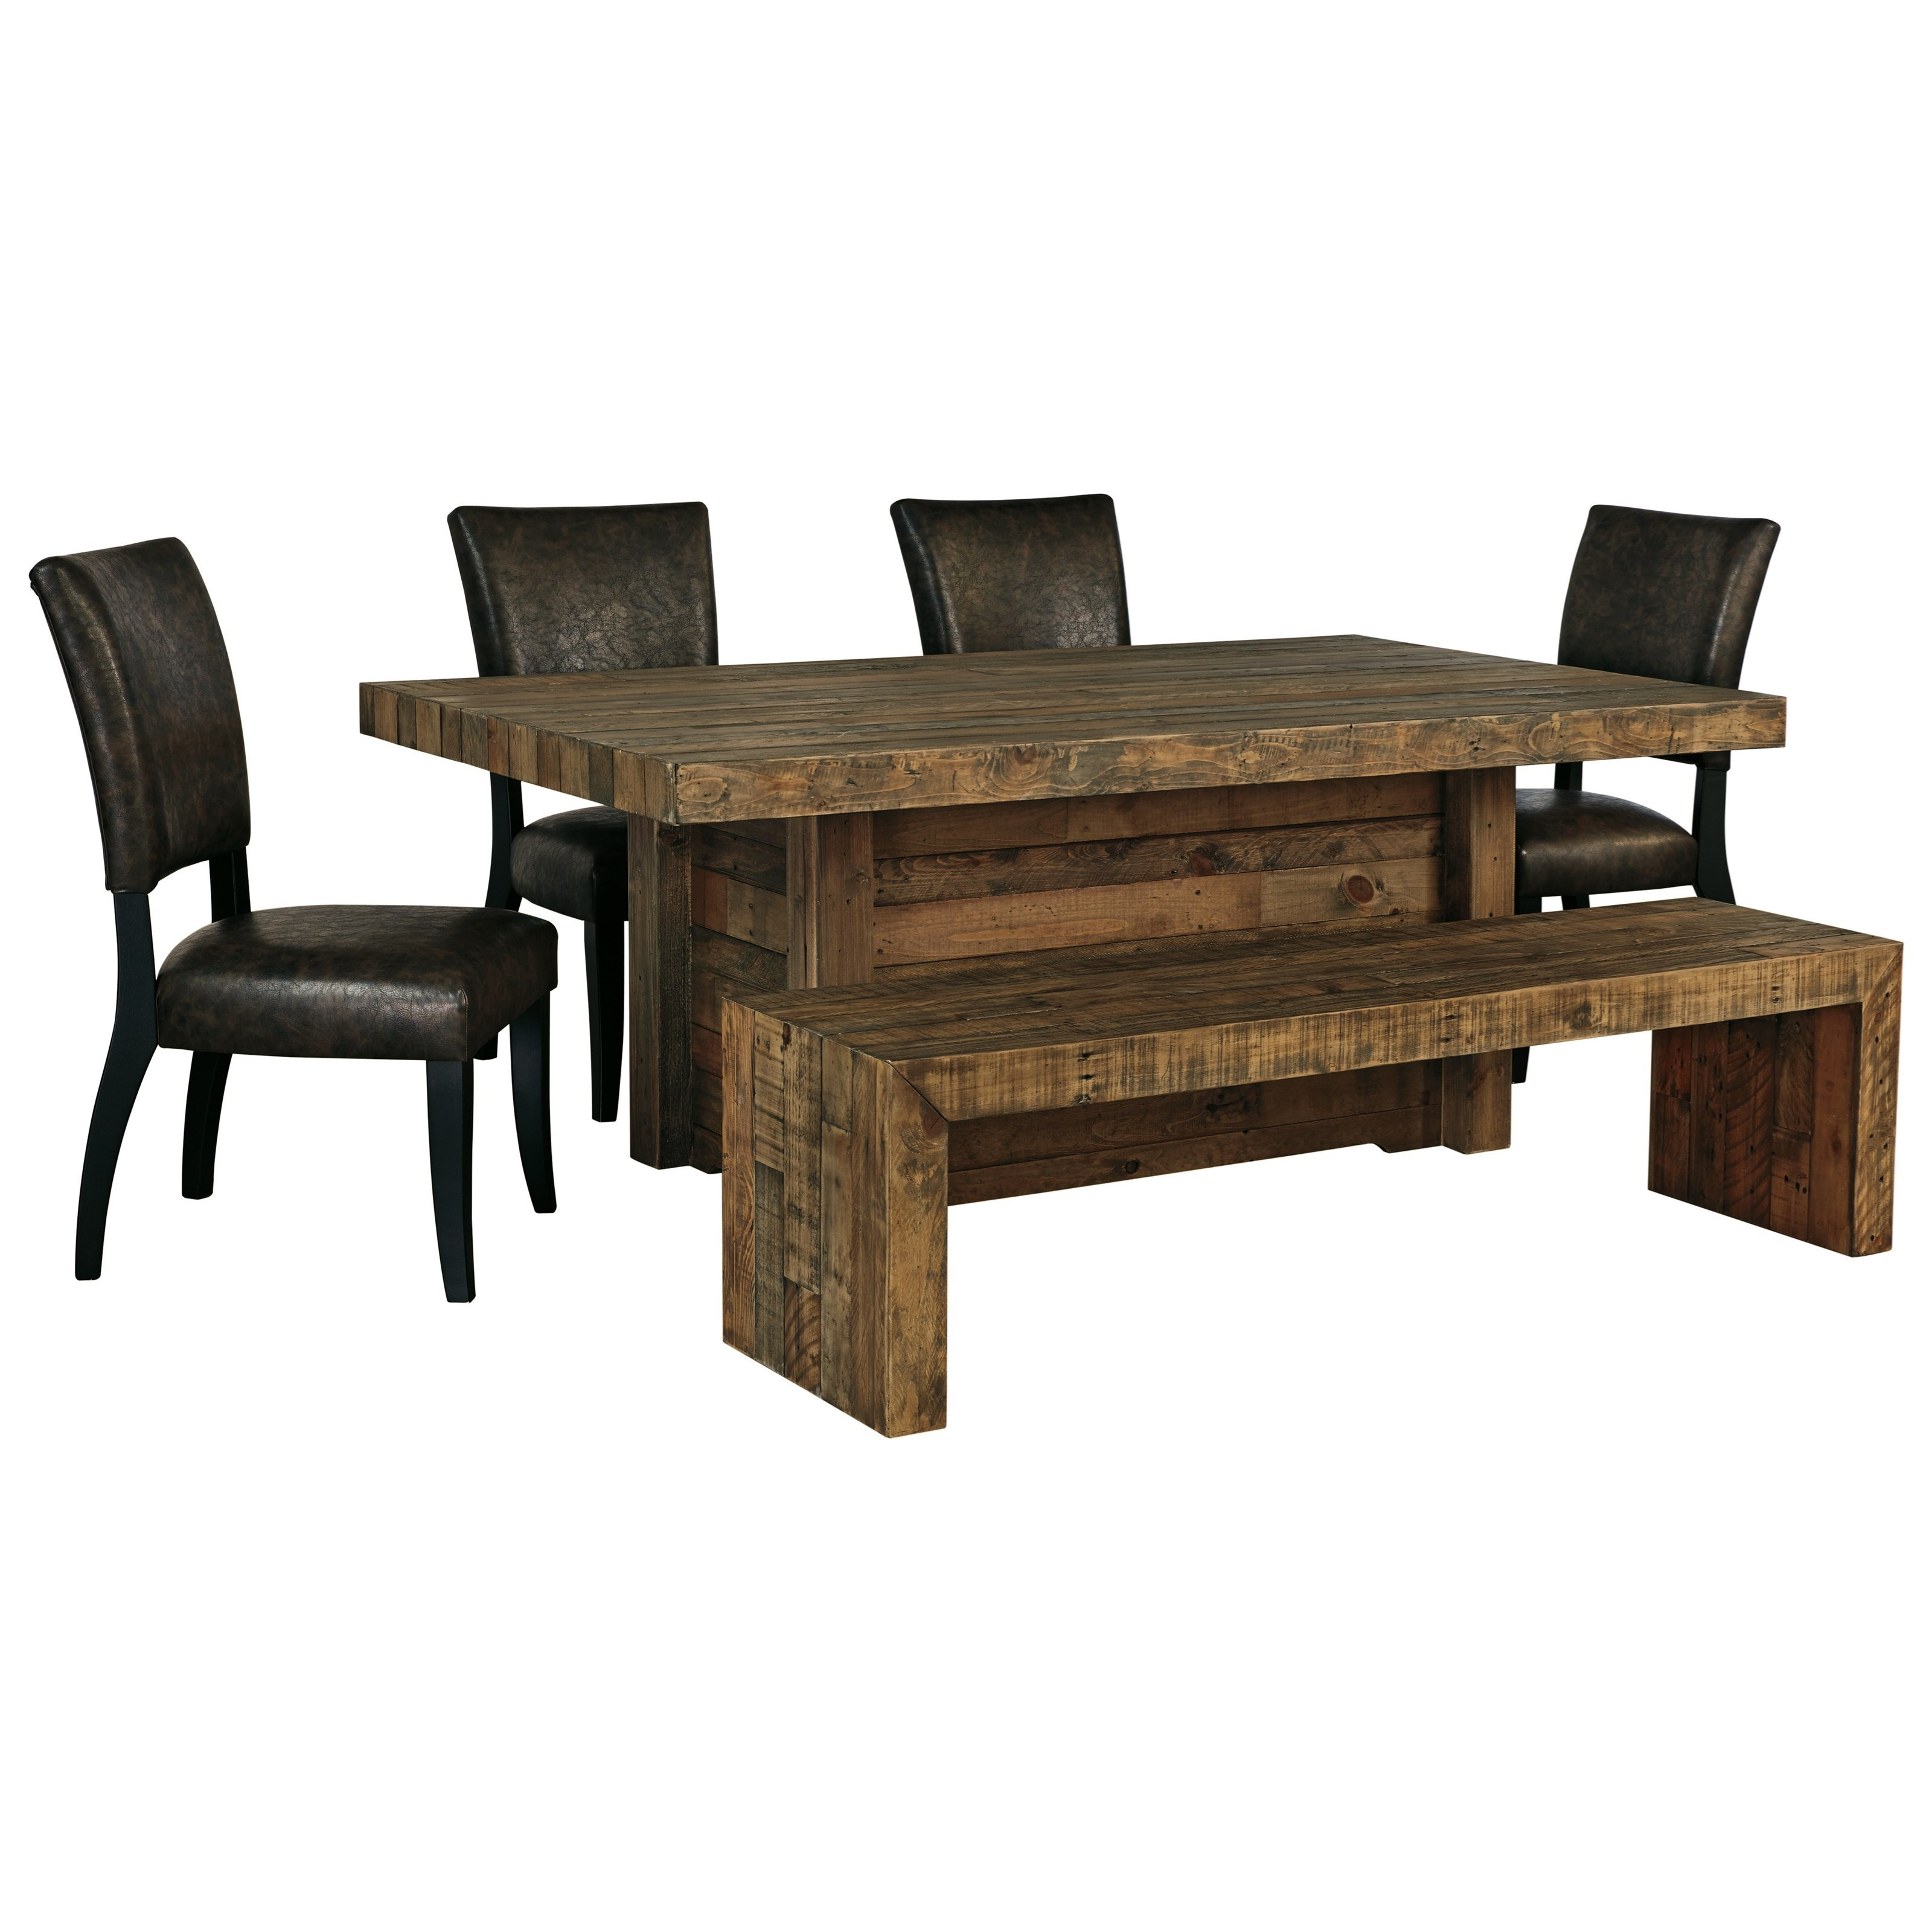 StyleLine Sommerford 6 Piece Table Set with Bench EFO